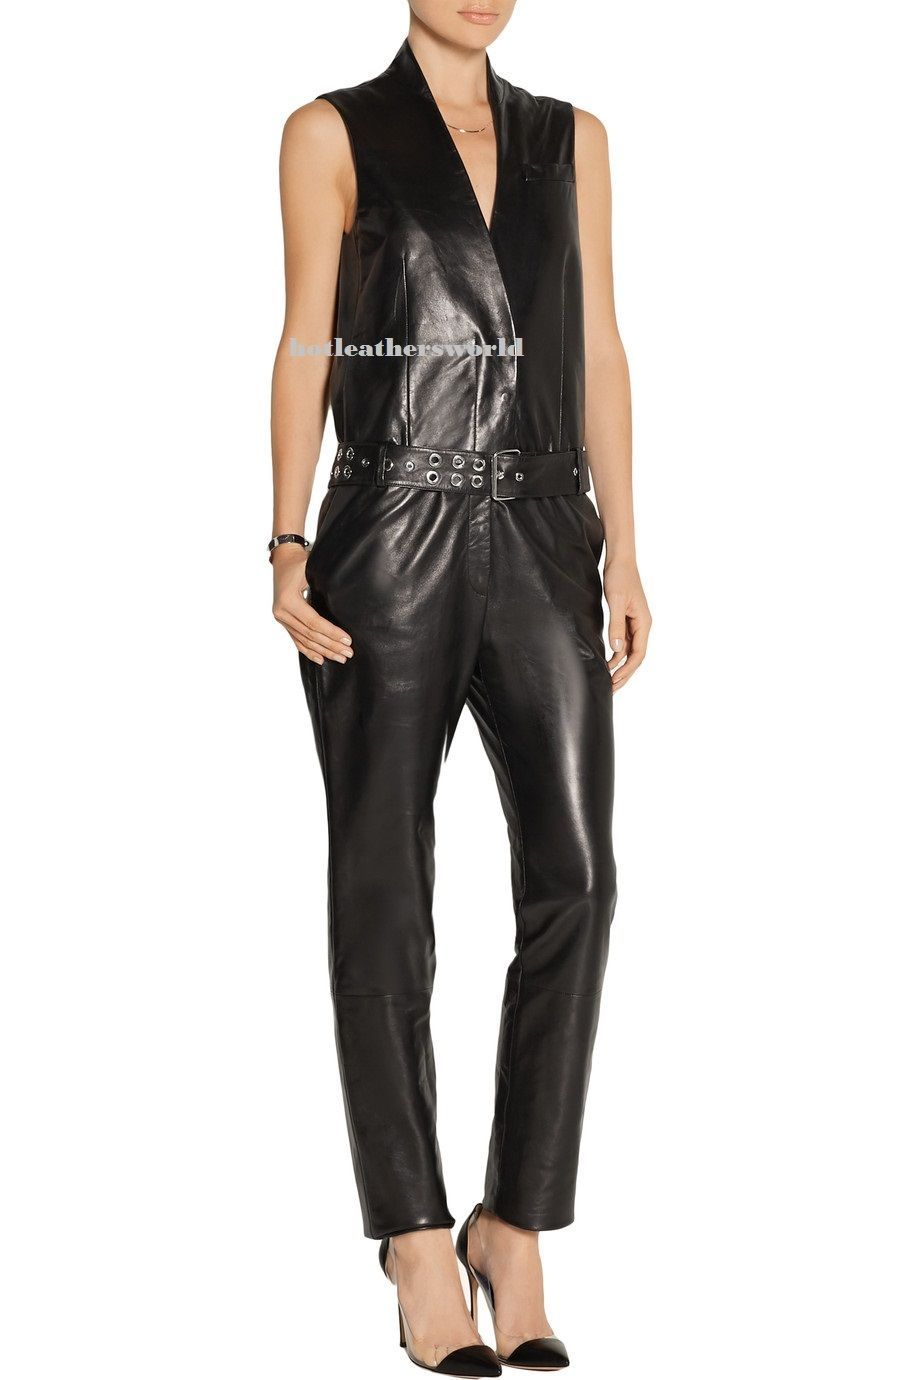 WOMEN LEATHER JUMPSUIT ROMPERS GENUINE LAMBSKIN REAL LEATHER JUMPSUIT-17